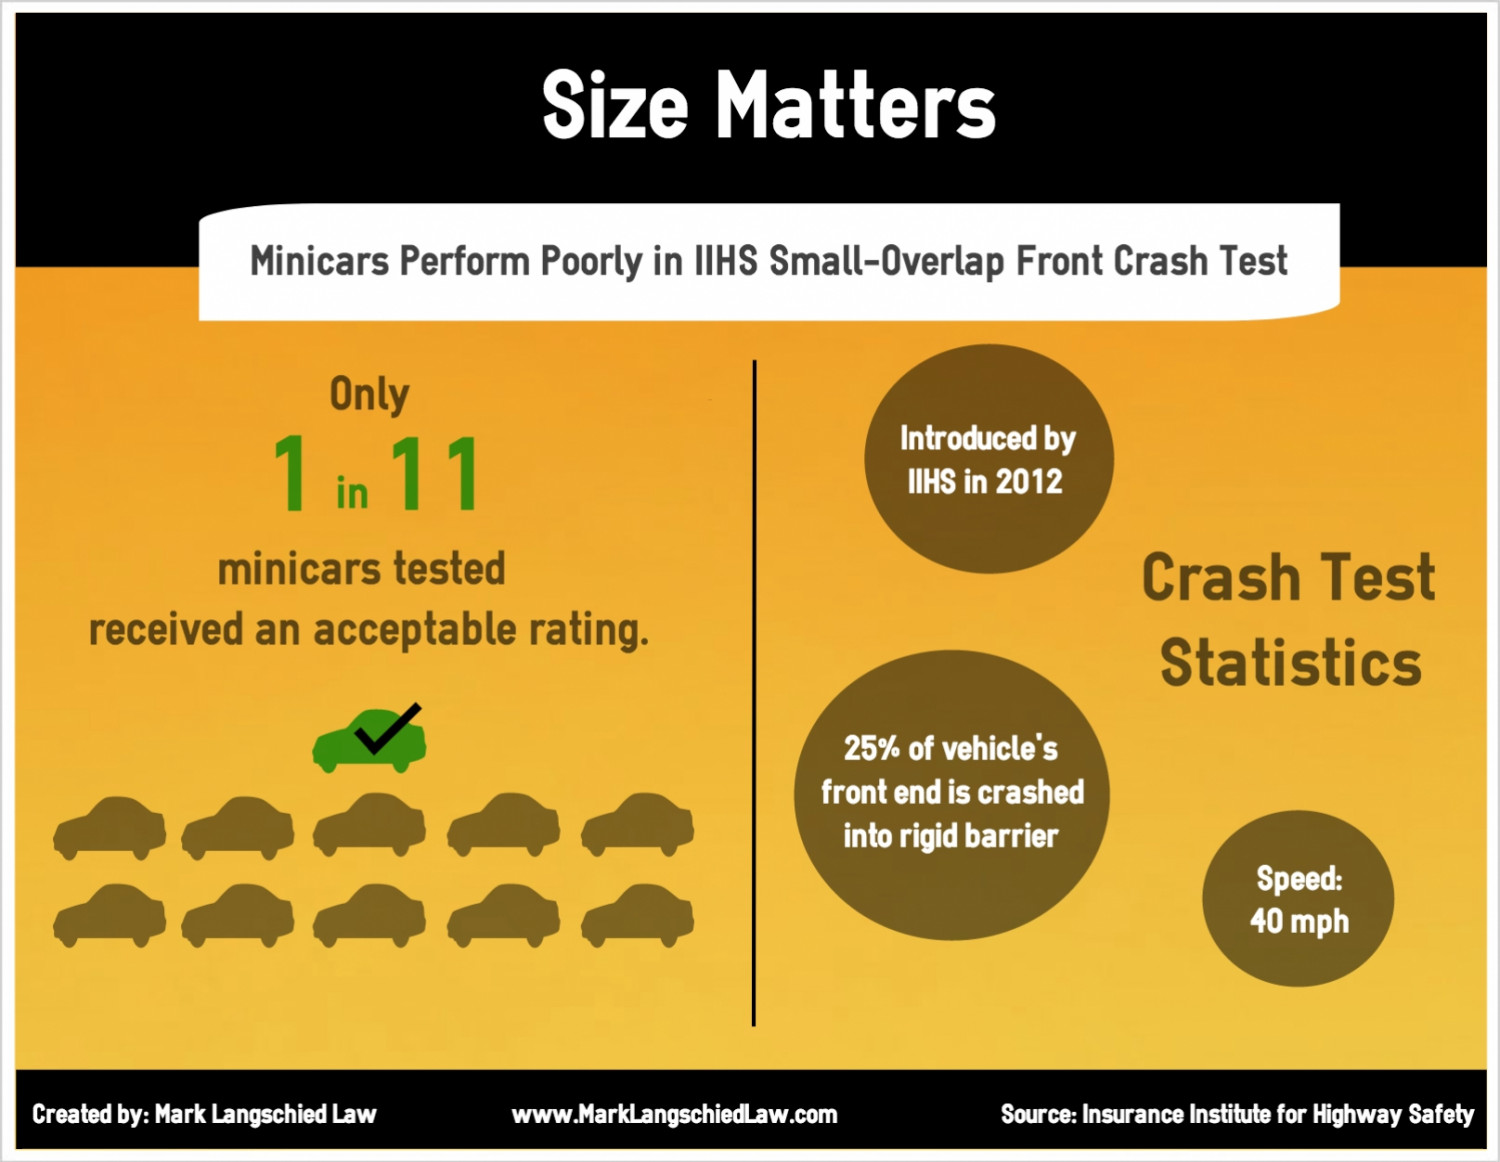 Size Matters Infographic